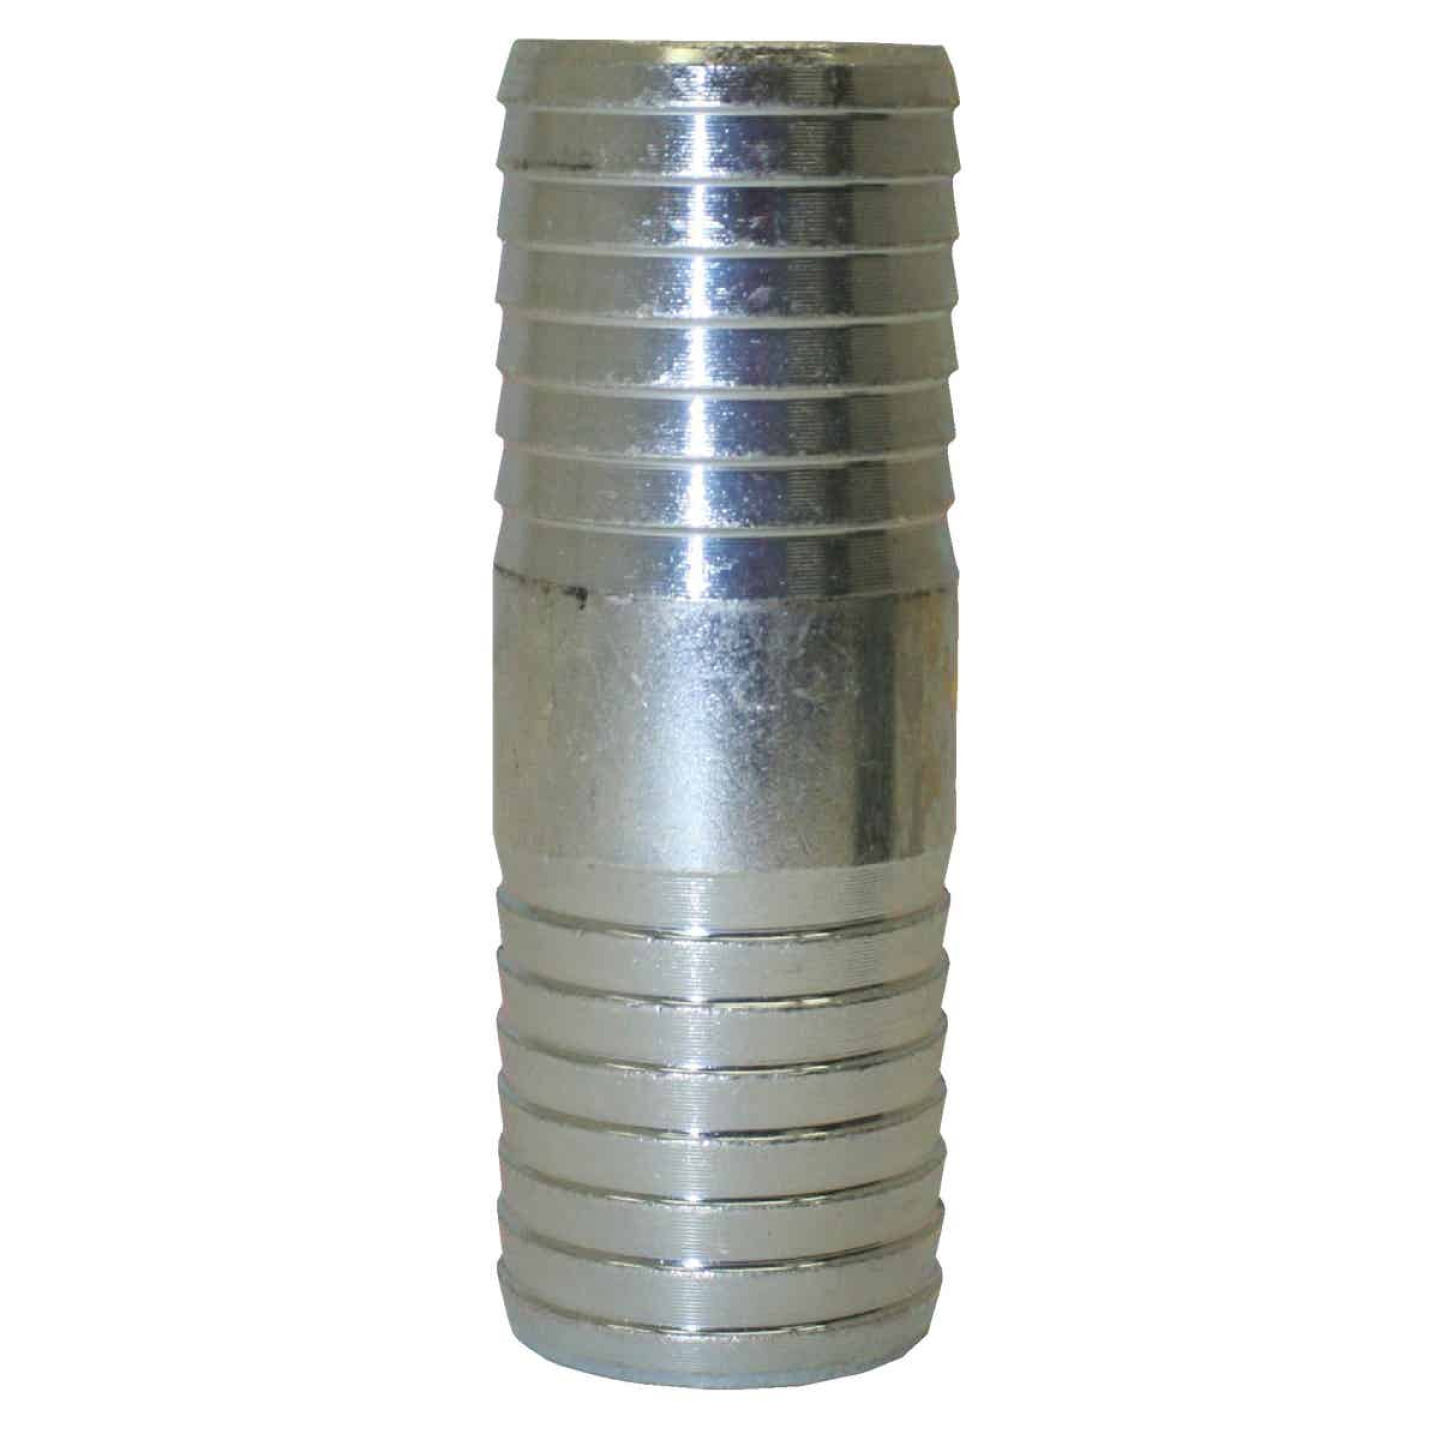 Merrill 1 In. x 1 In. Barb Insert Galvanized Coupling Image 1